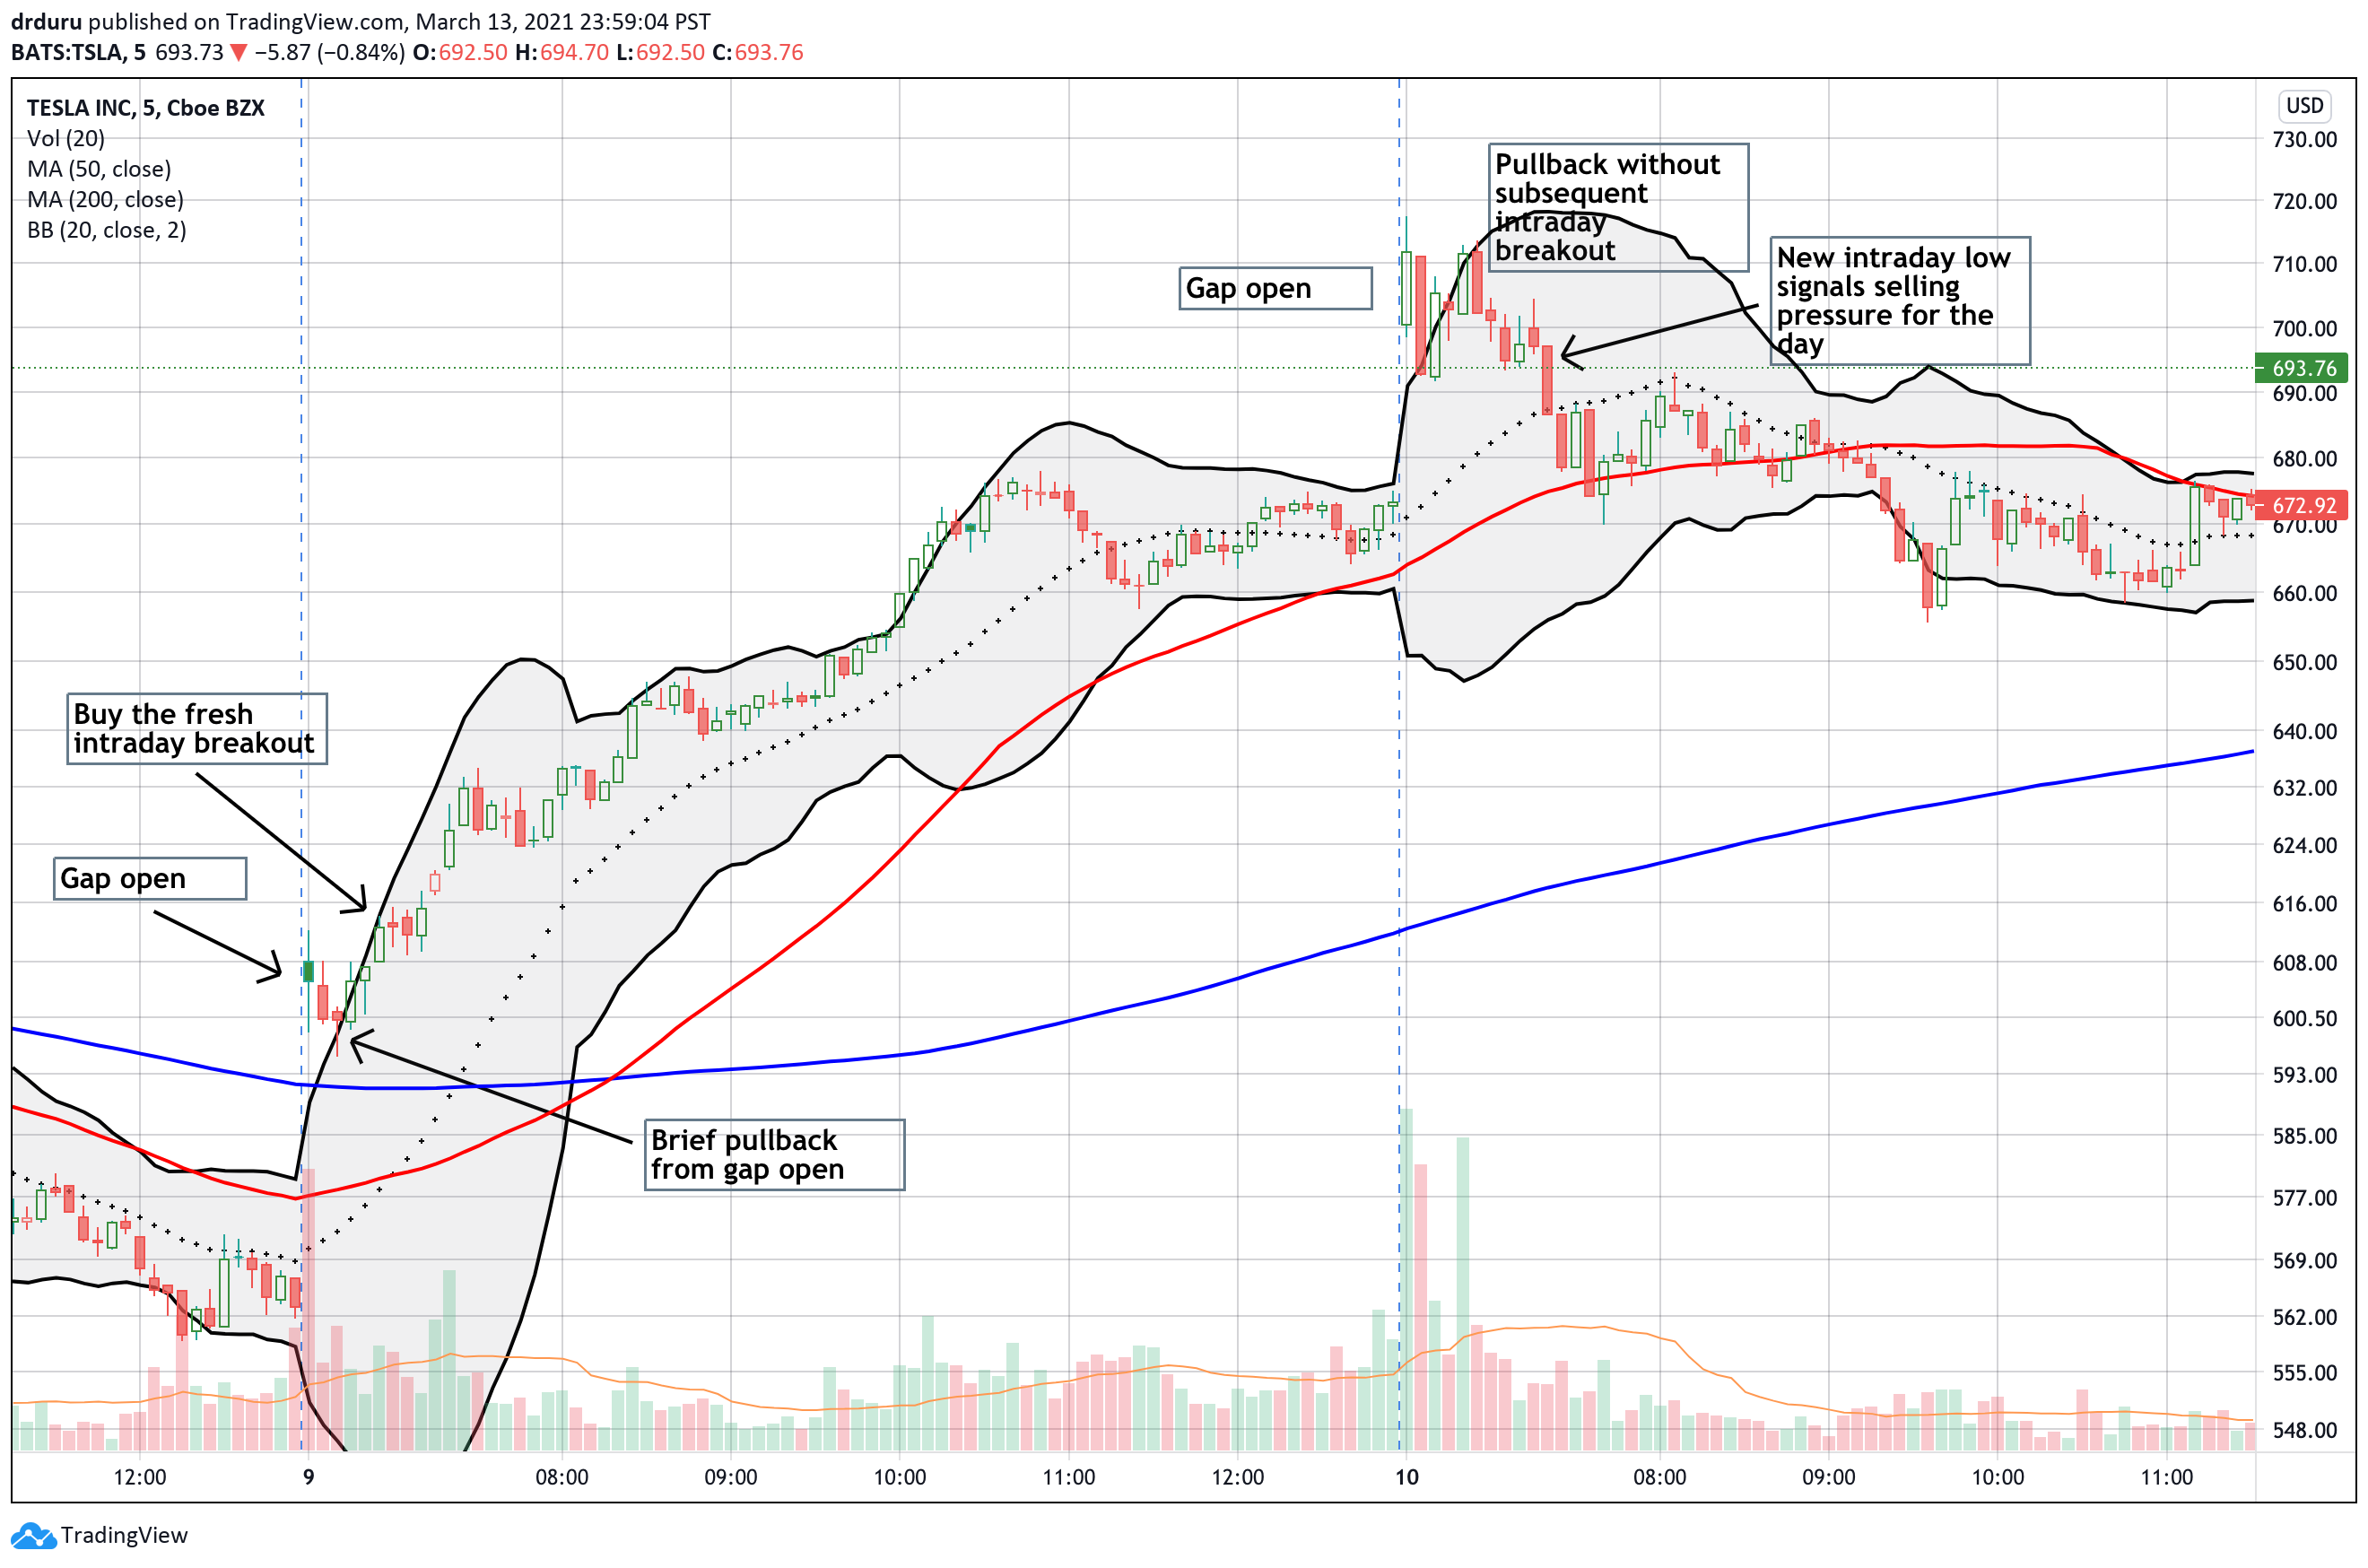 This 5-minute chart of Tesla (TSLA) demonstrates how the Bullish Steamroller can begin with a gap up open. Note how the next day's gap up failed to support the Bullish Steamroller signal.